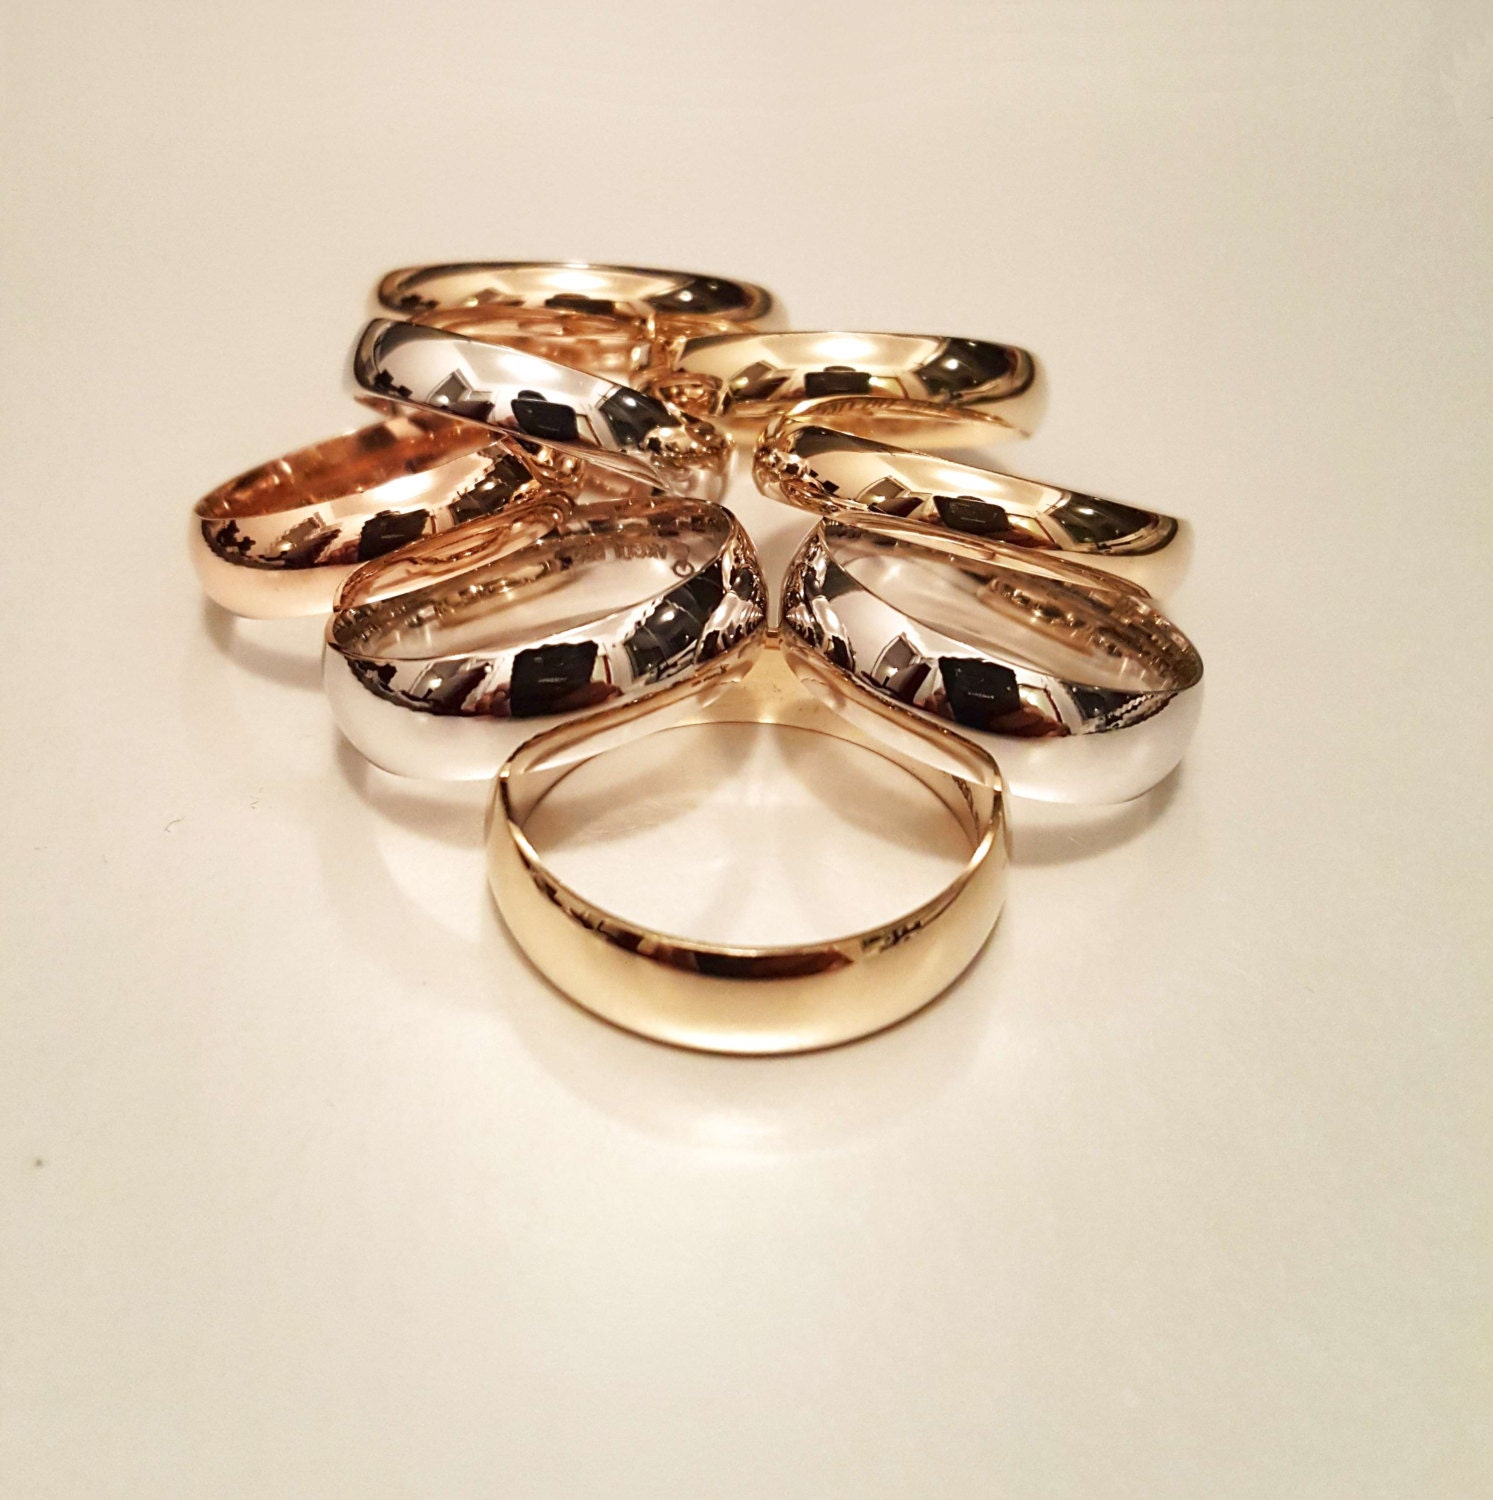 14k solid gold wedding engagement ring 14k gold his and hers